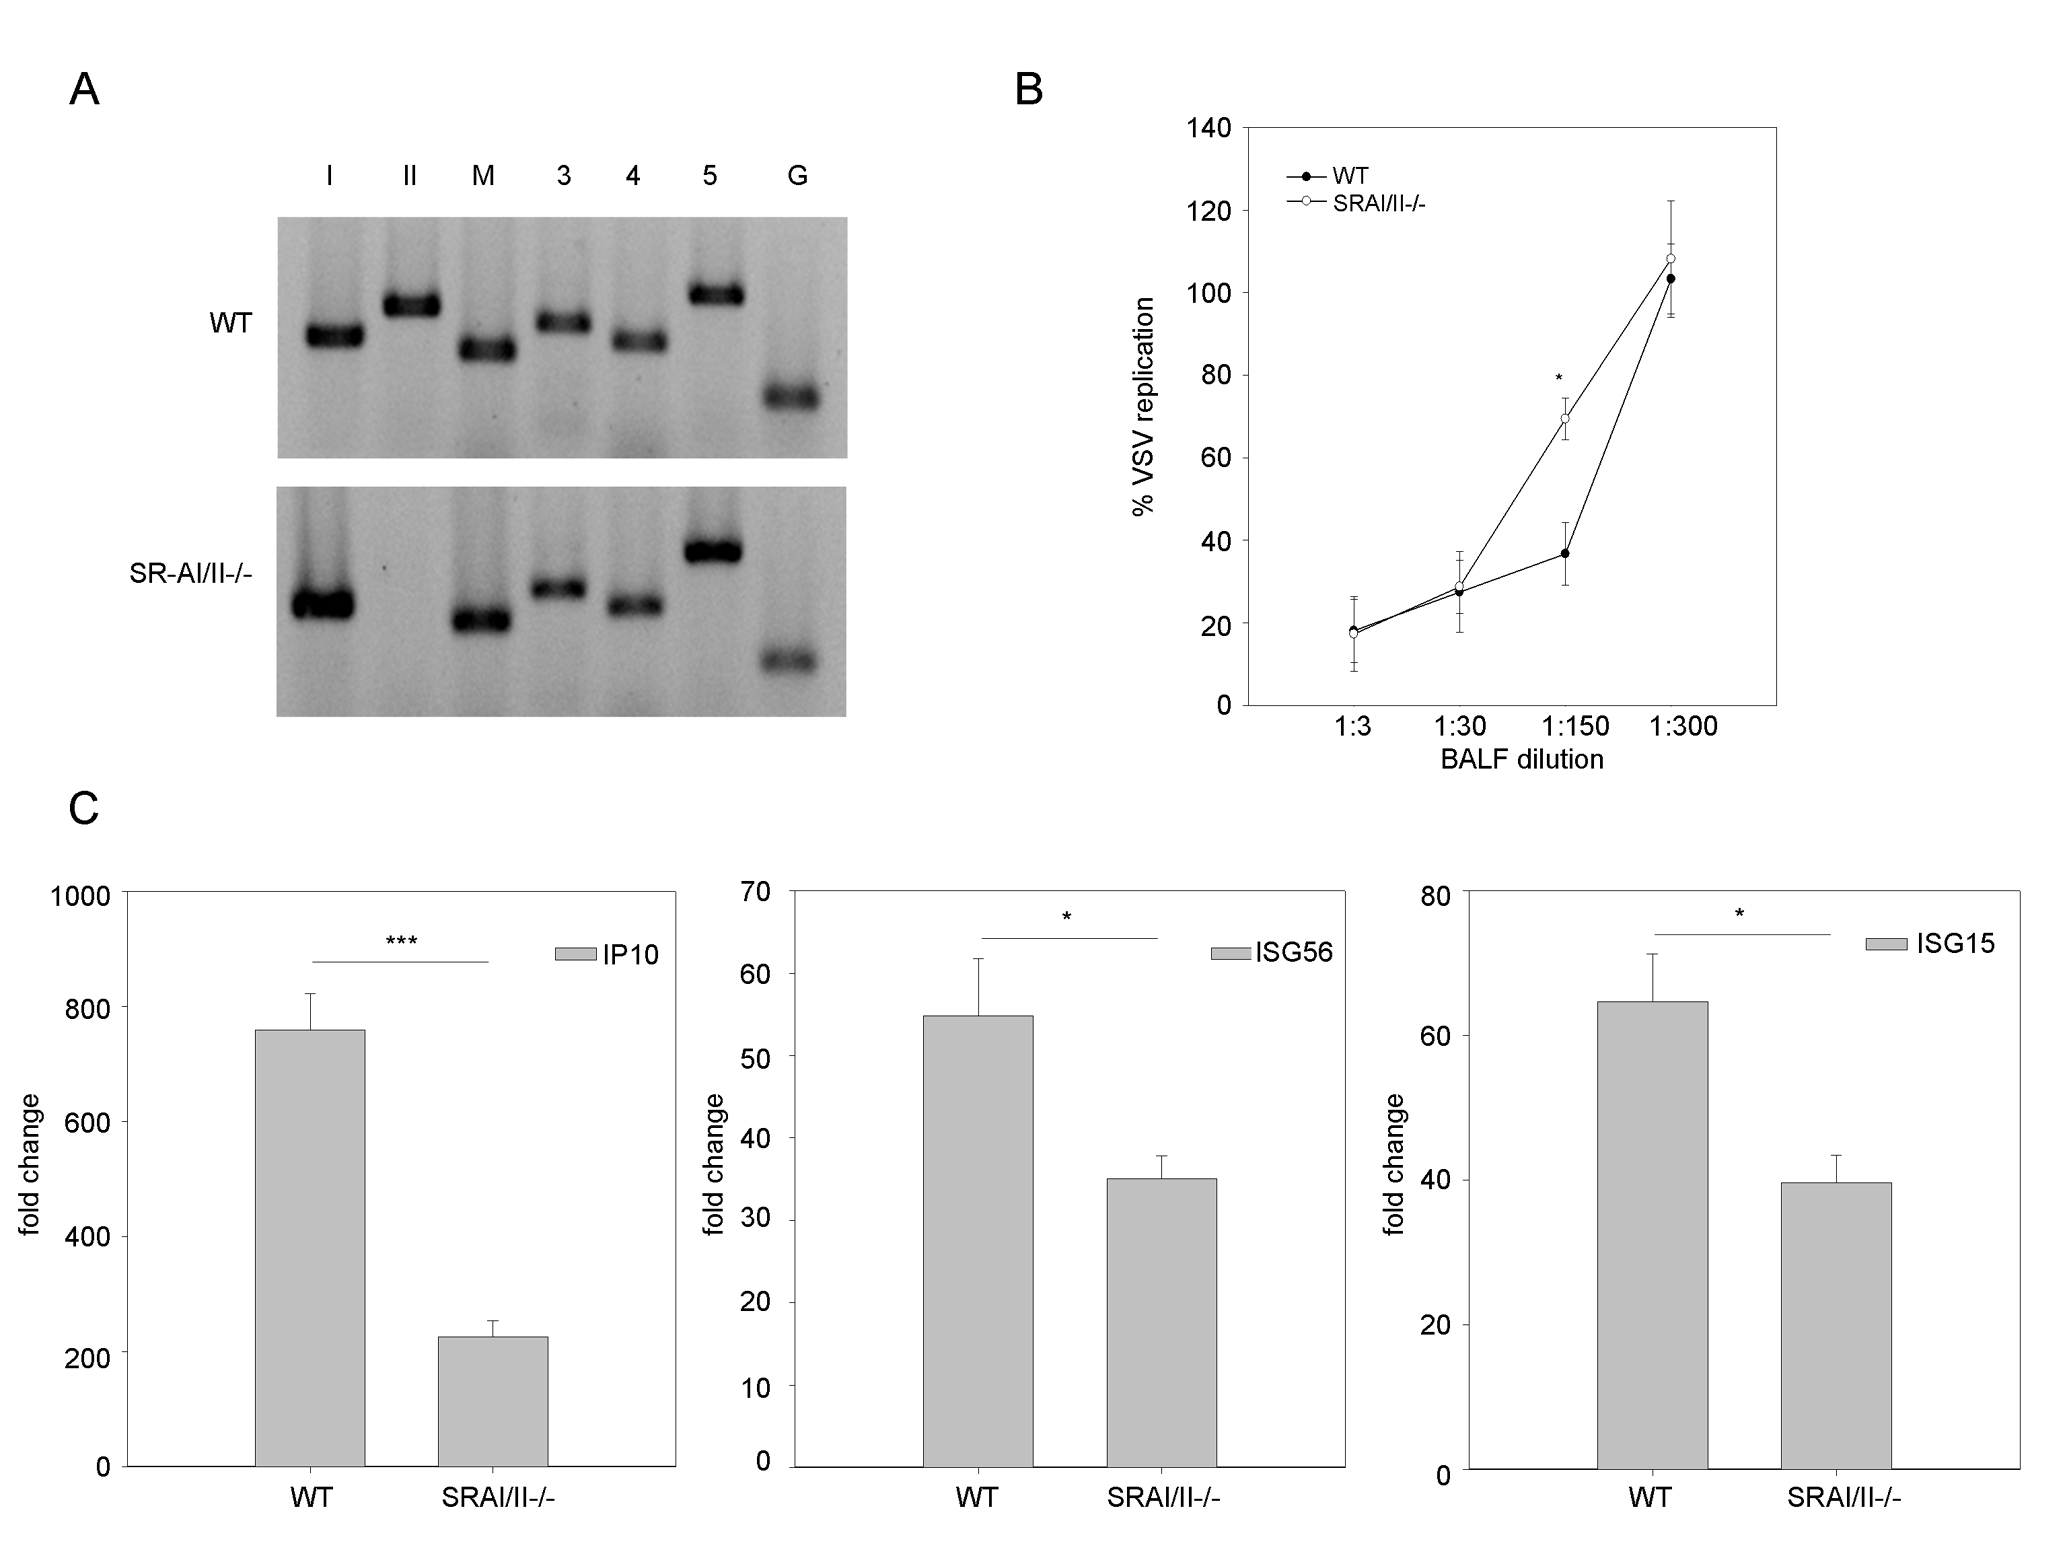 SR-As are involved in dsRNA induced antiviral responses <i>in vivo</i>.